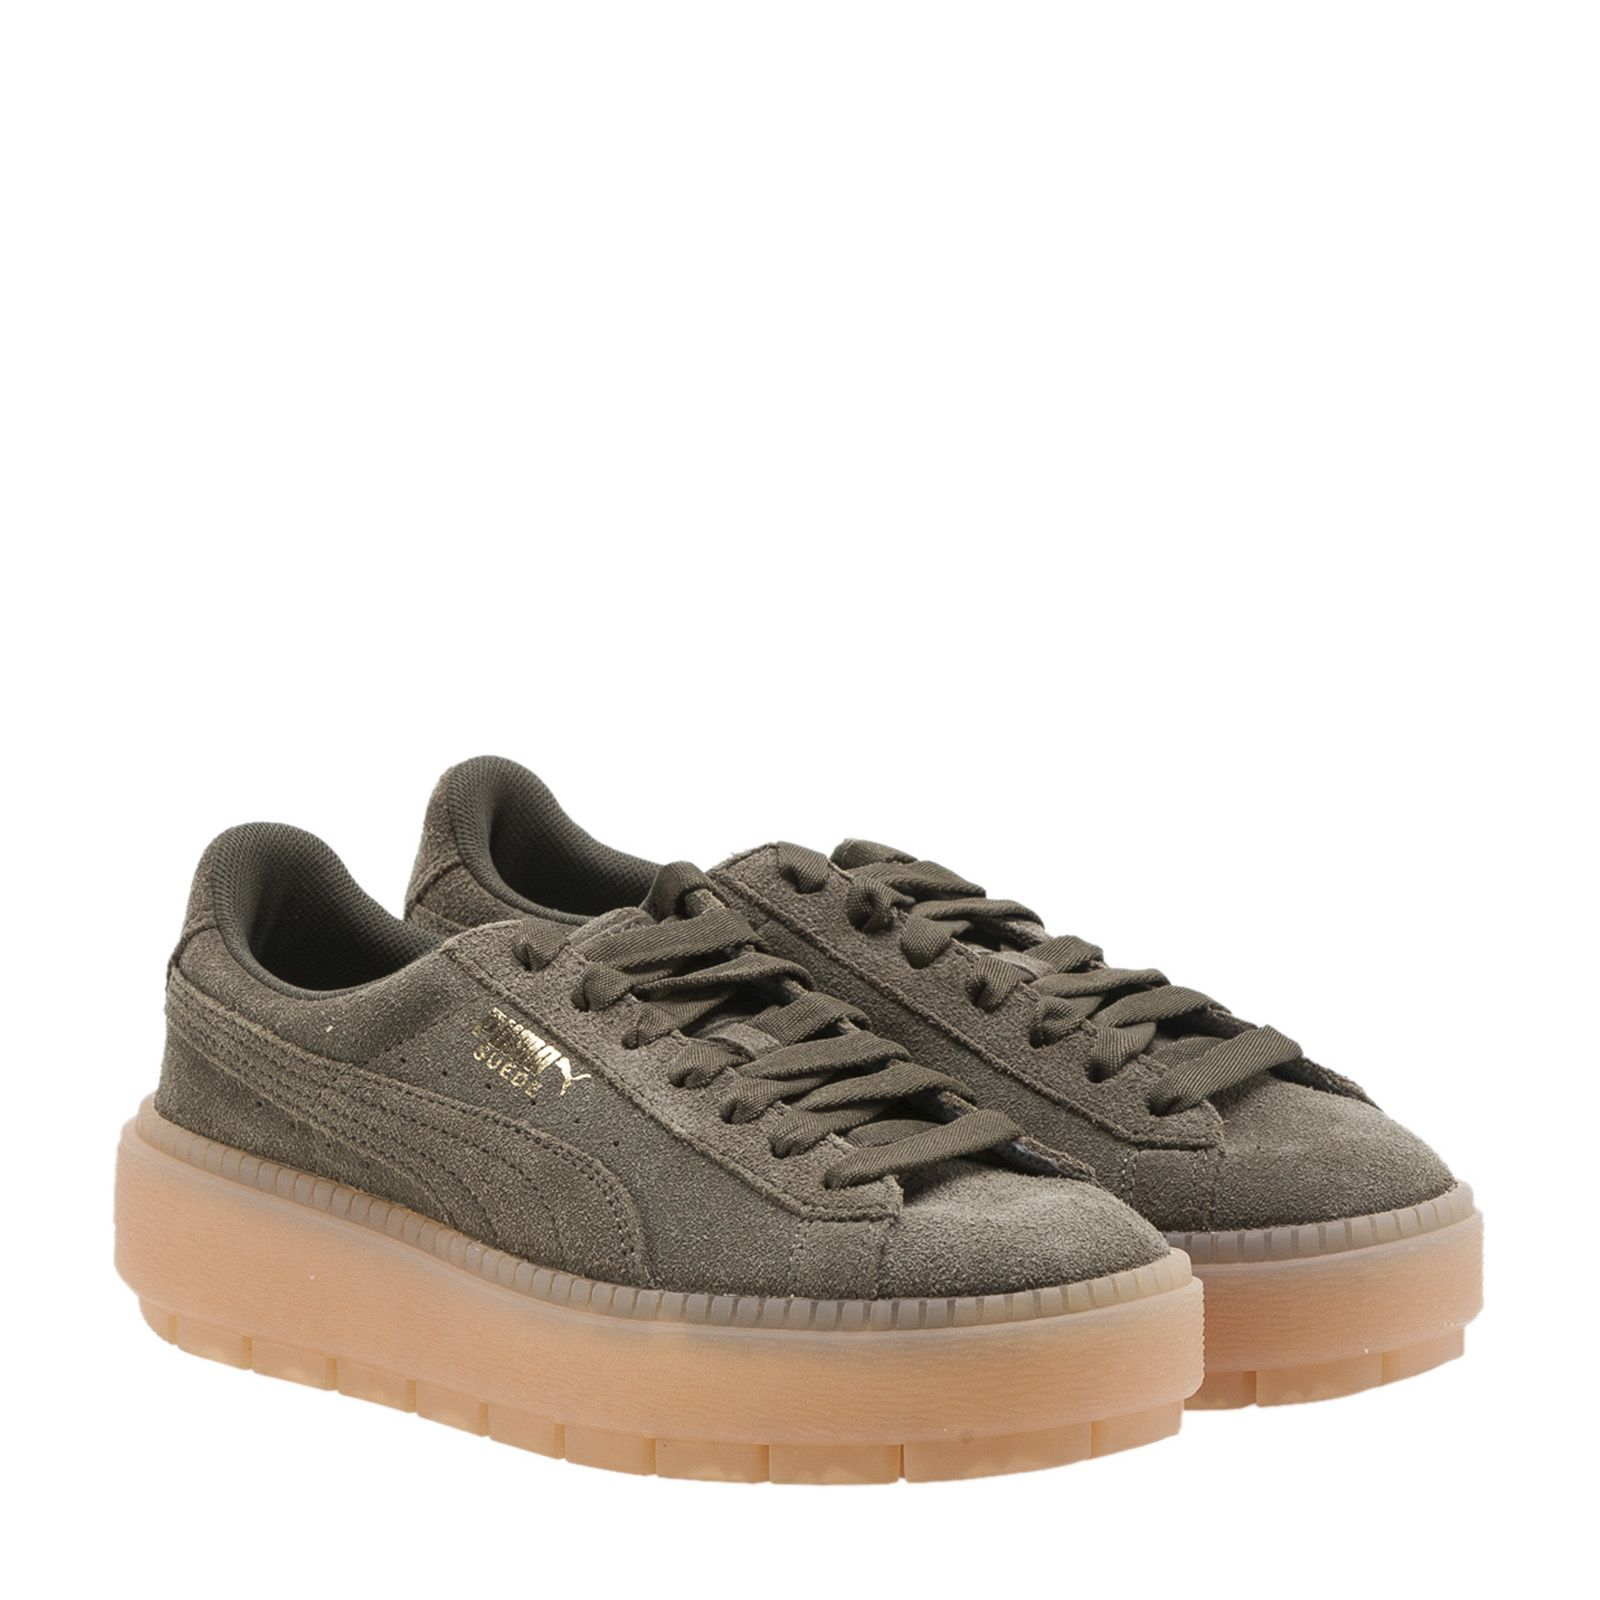 Puma Platform Low Top Sneakers